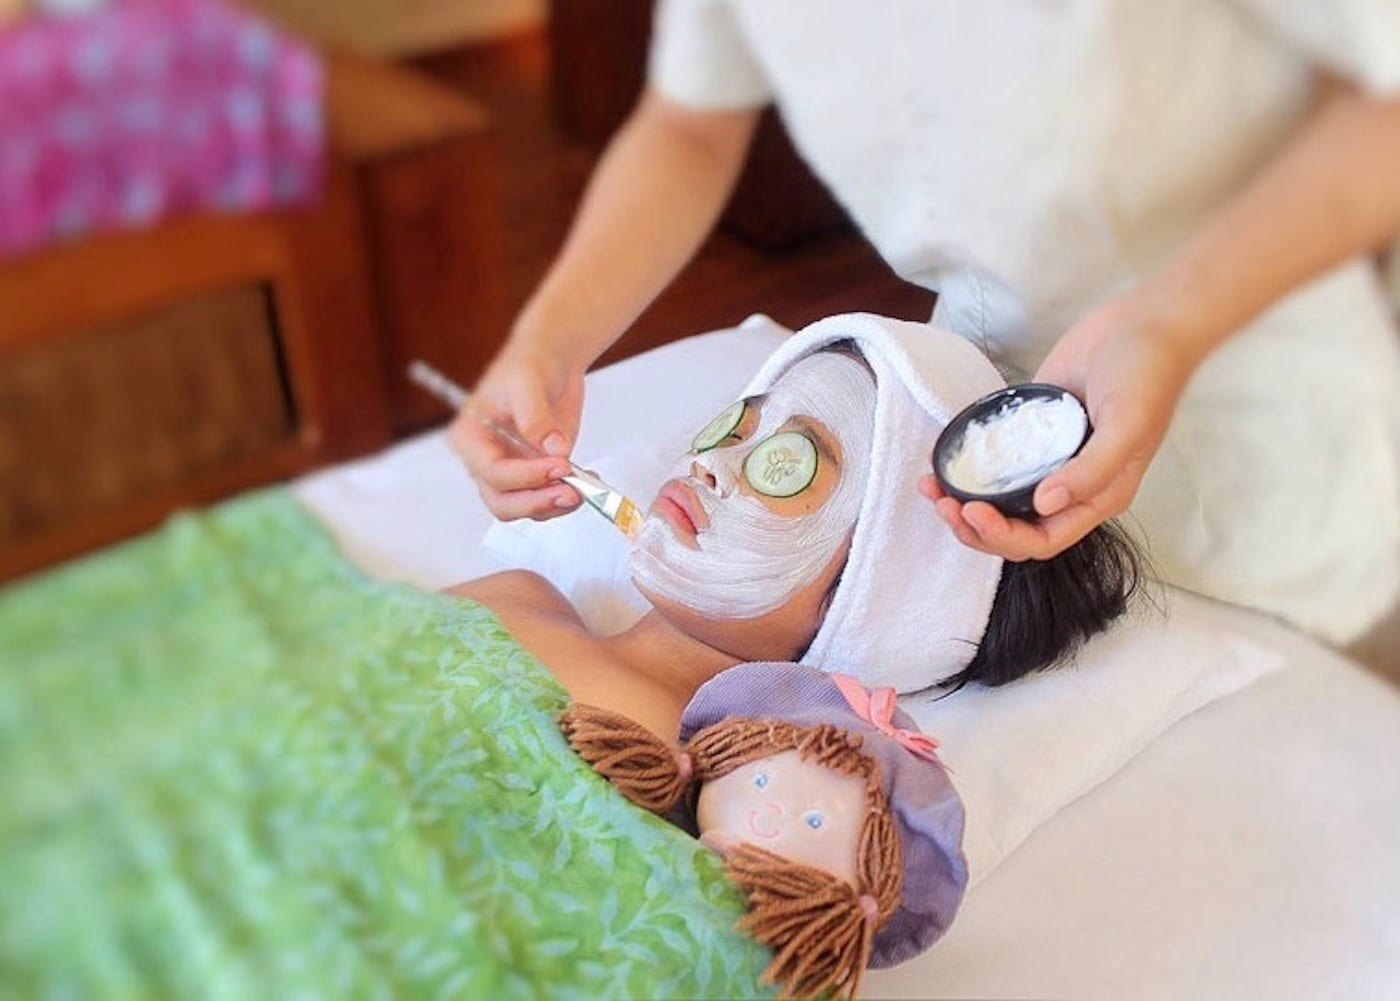 The best spas for kids in Bali with Mummy & Me pampering packages